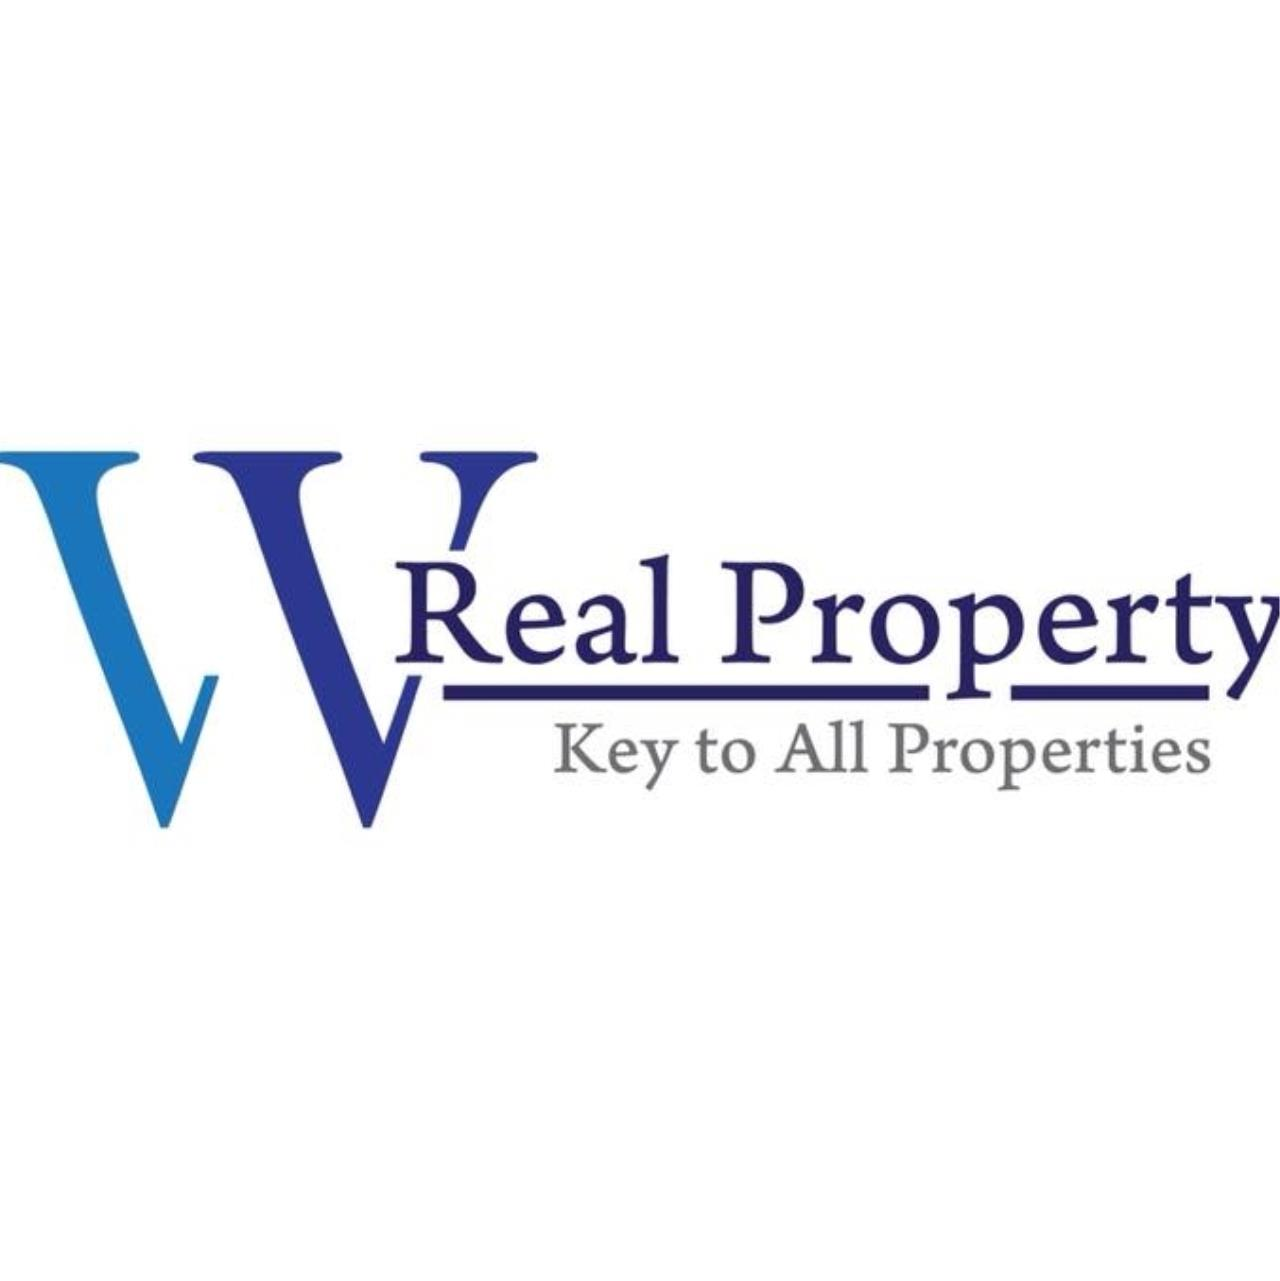 W Real Property logo